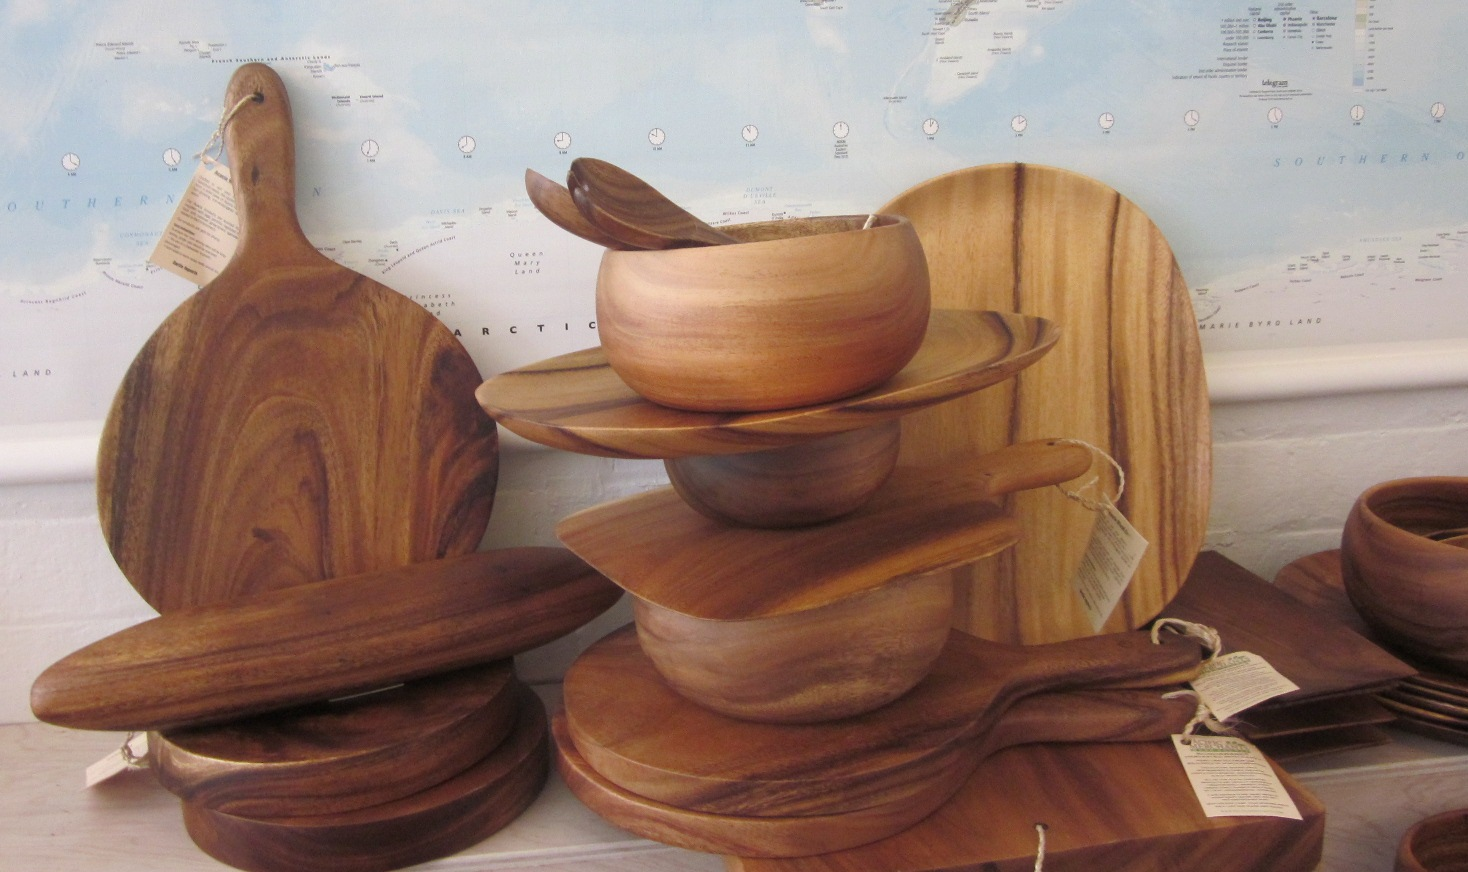 Product made from Acacia wood